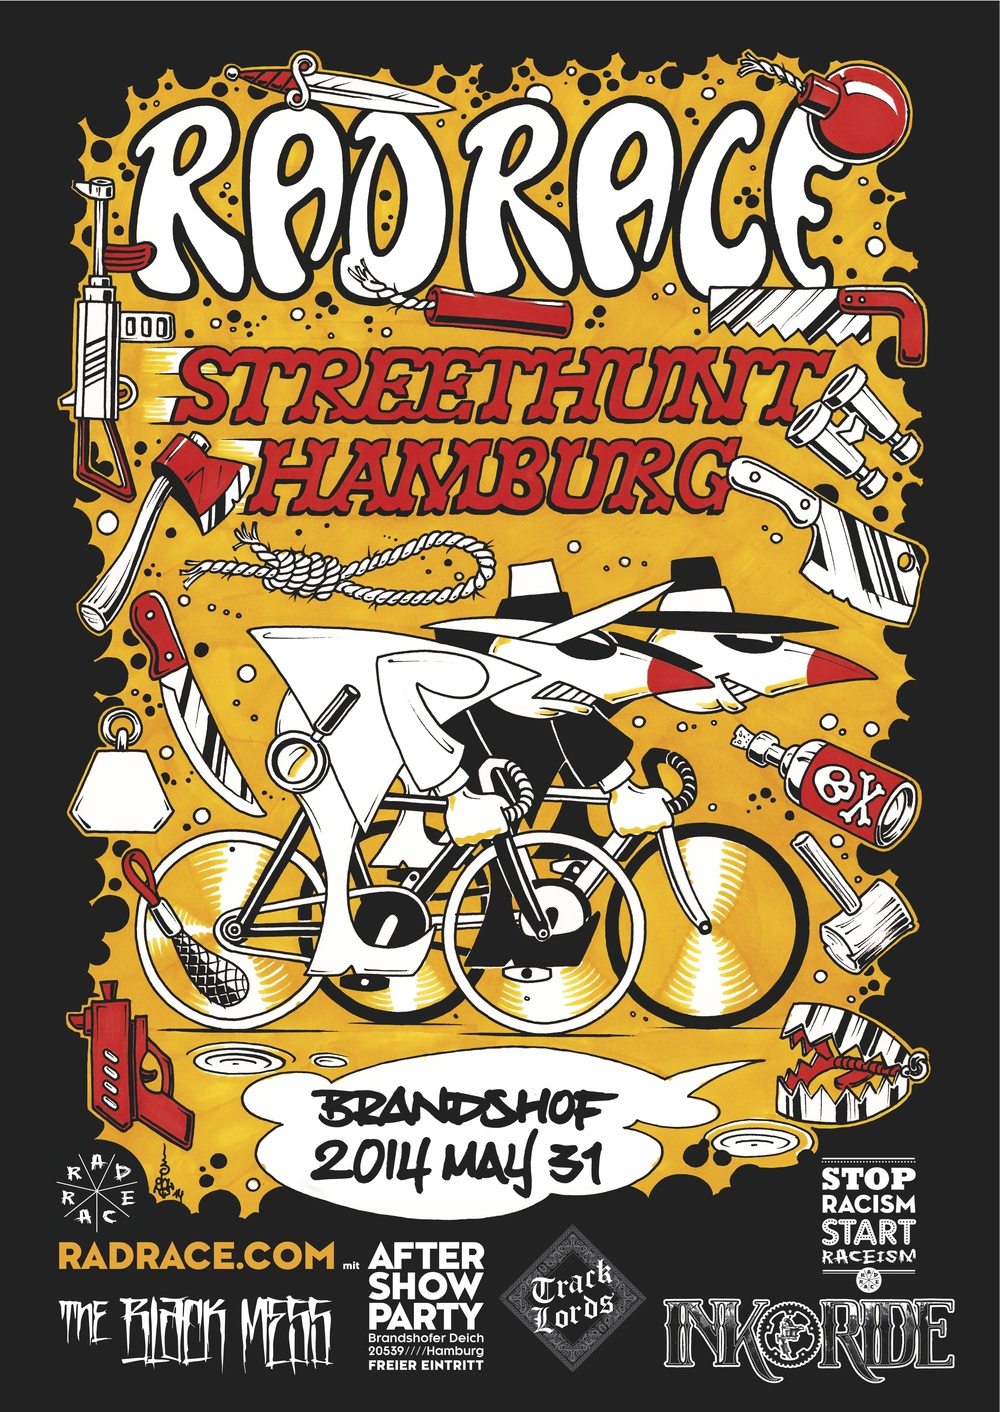 THE official poster for the RAD RACE STREET HUNT Hamburg, May 31st 2014. Made by Jochen from Krock, Kneip & Rother Tattoo Artists. Massive THX!!!!